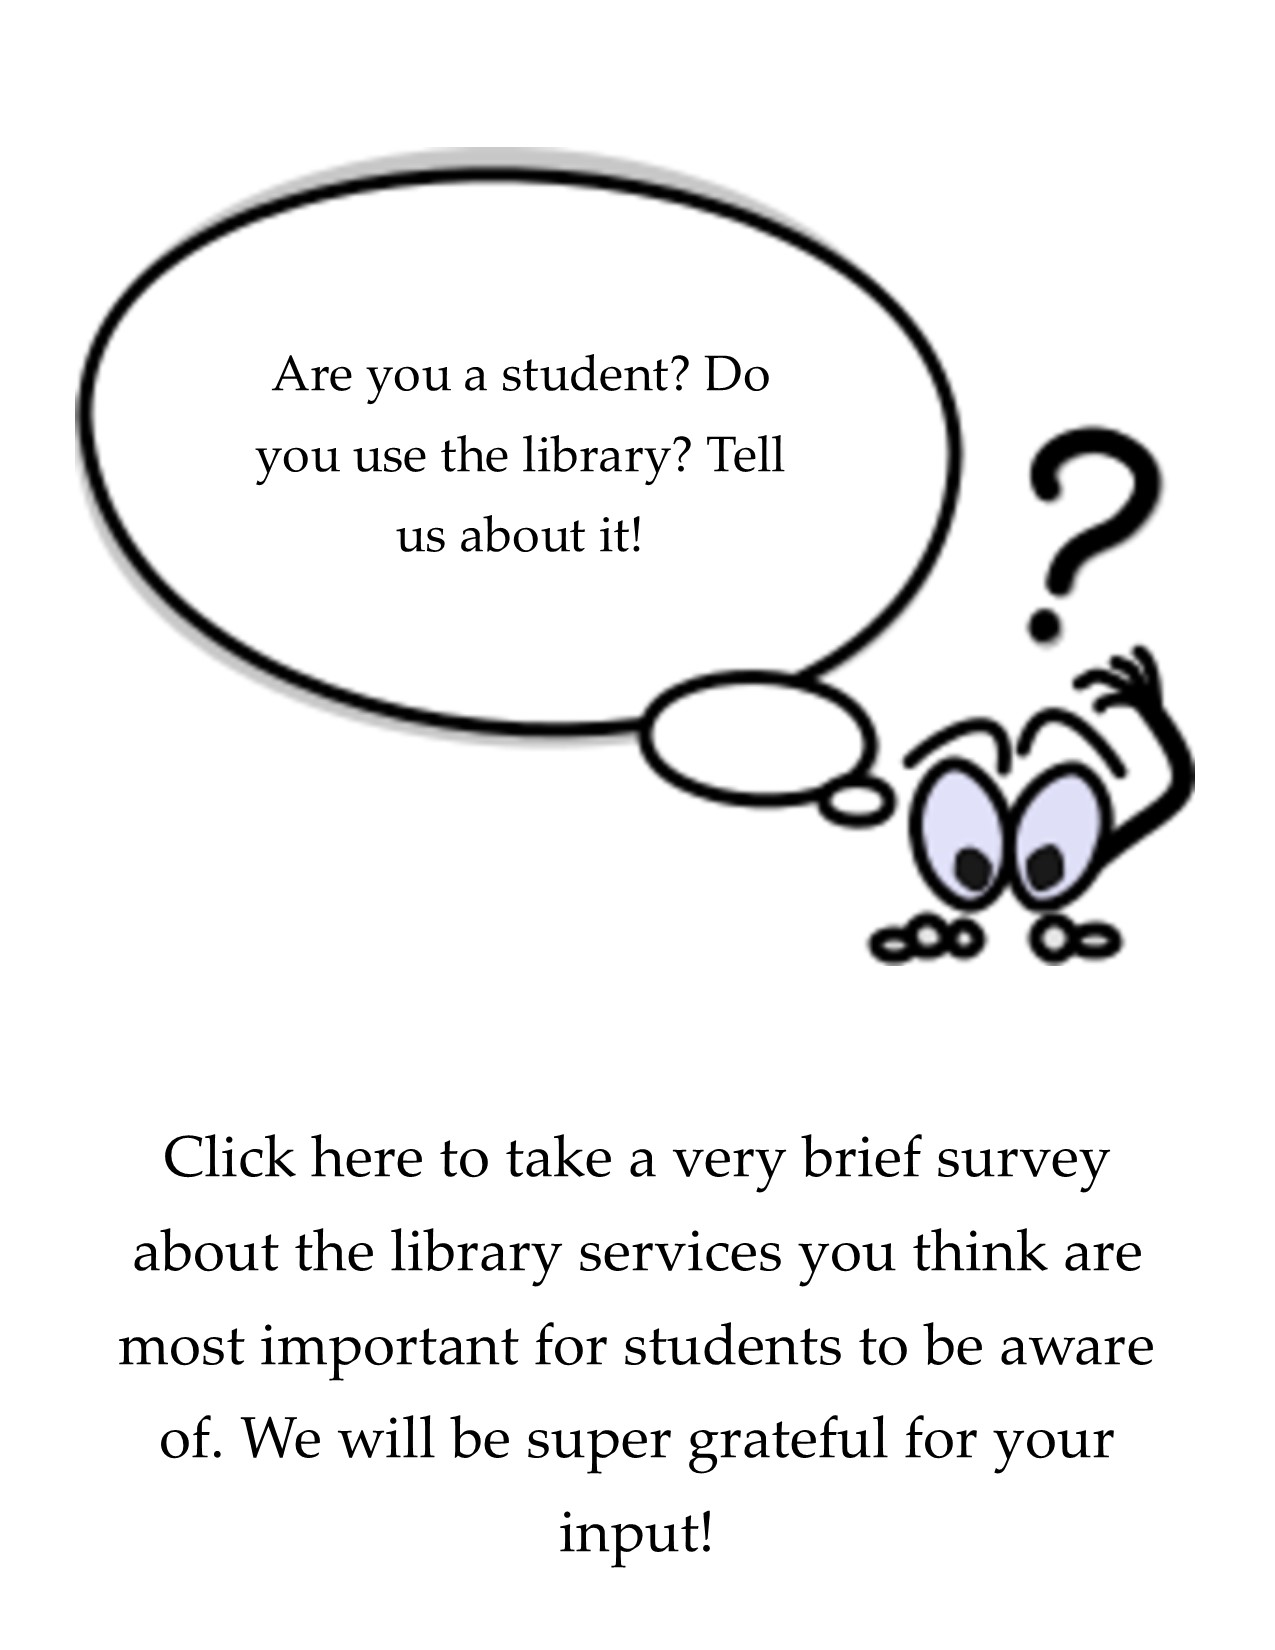 Are you a student? Do you use the library? Tell us about it!